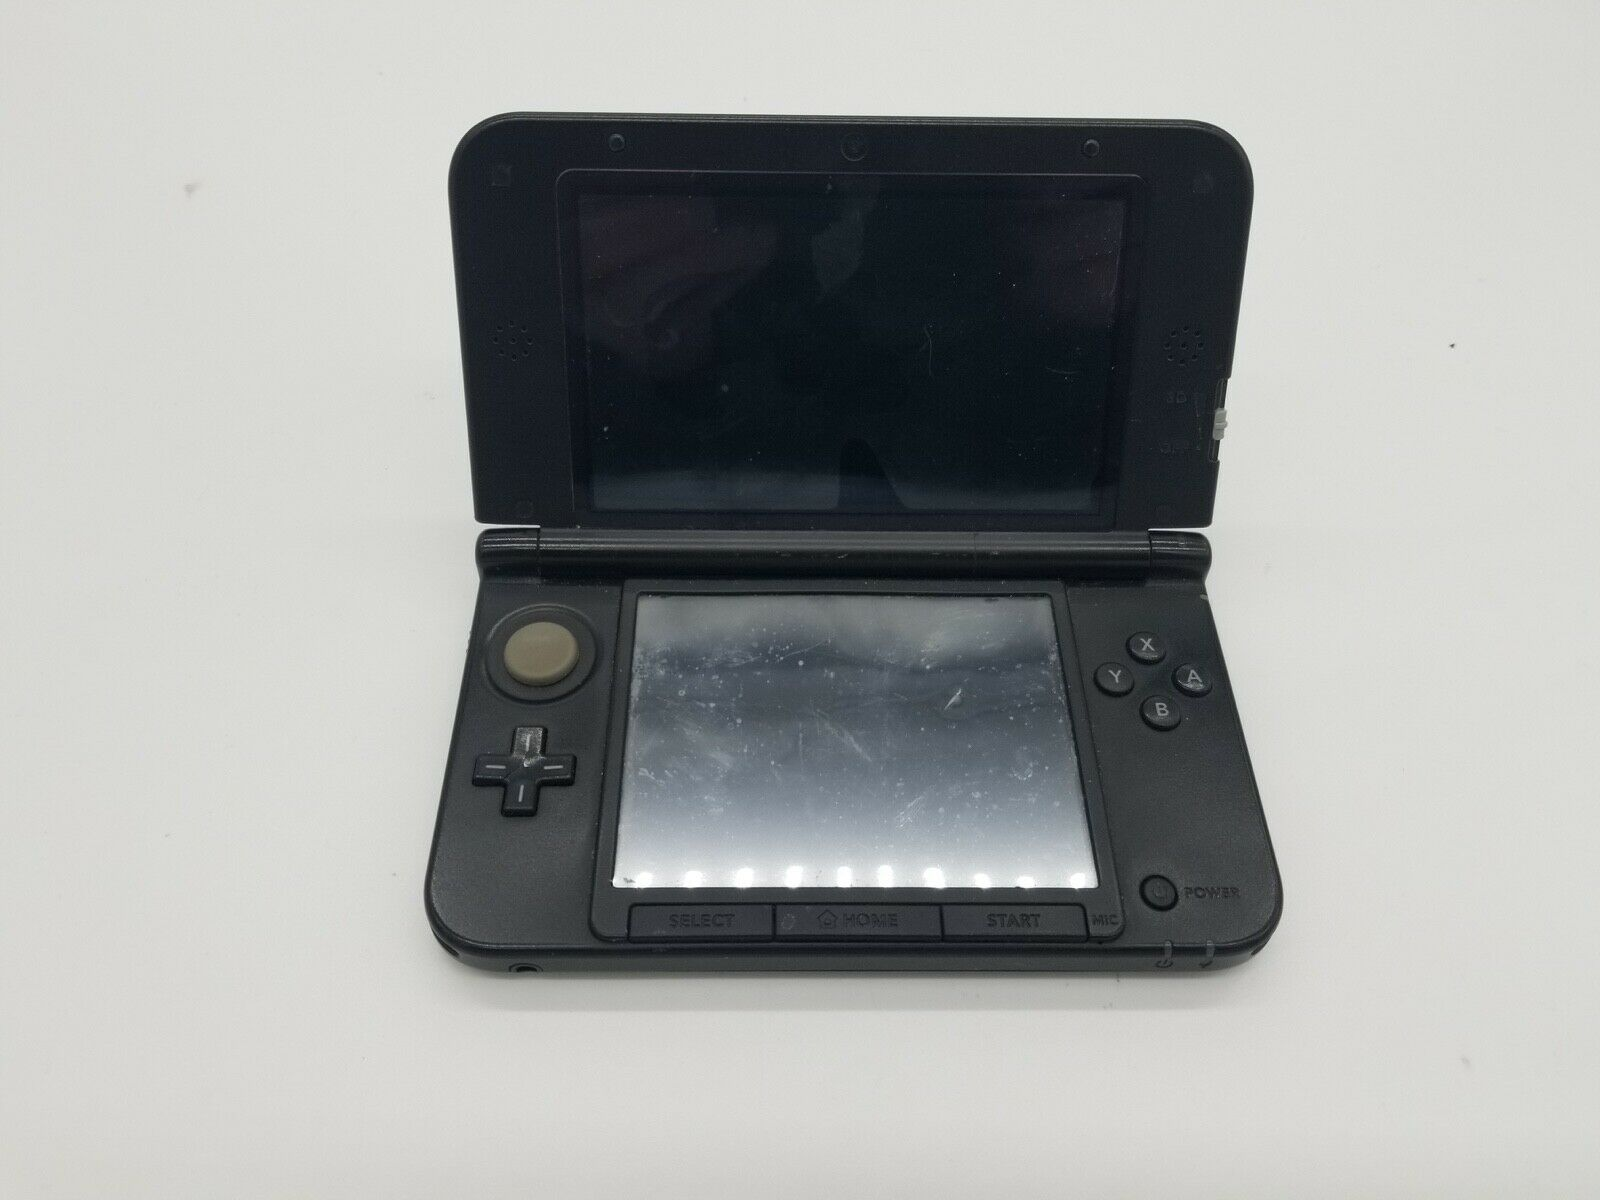 Nintendo 3DS XL Black Handheld Console SPR-001 USA For Parts Or Repair  - $49.95